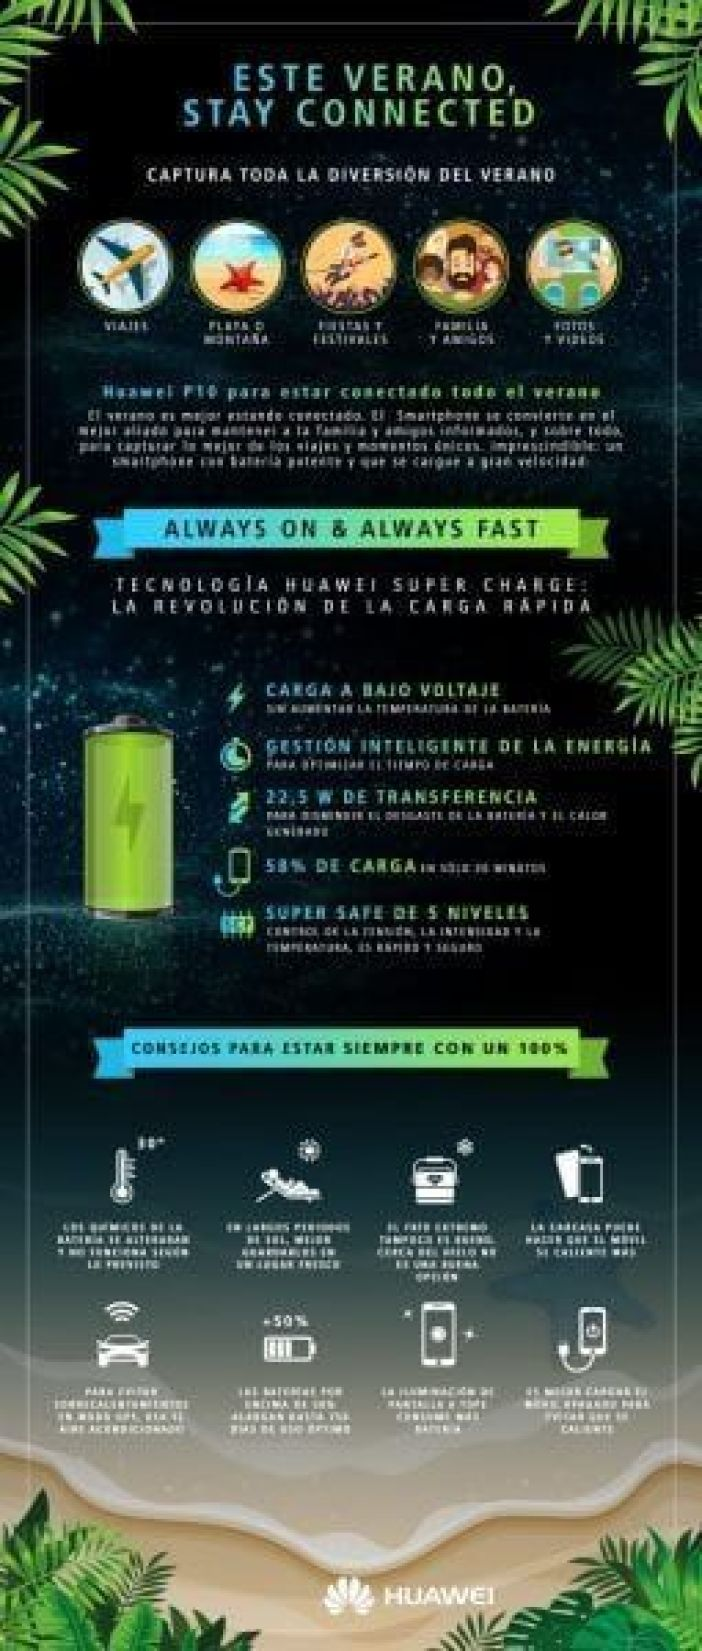 Este verano, stay connected